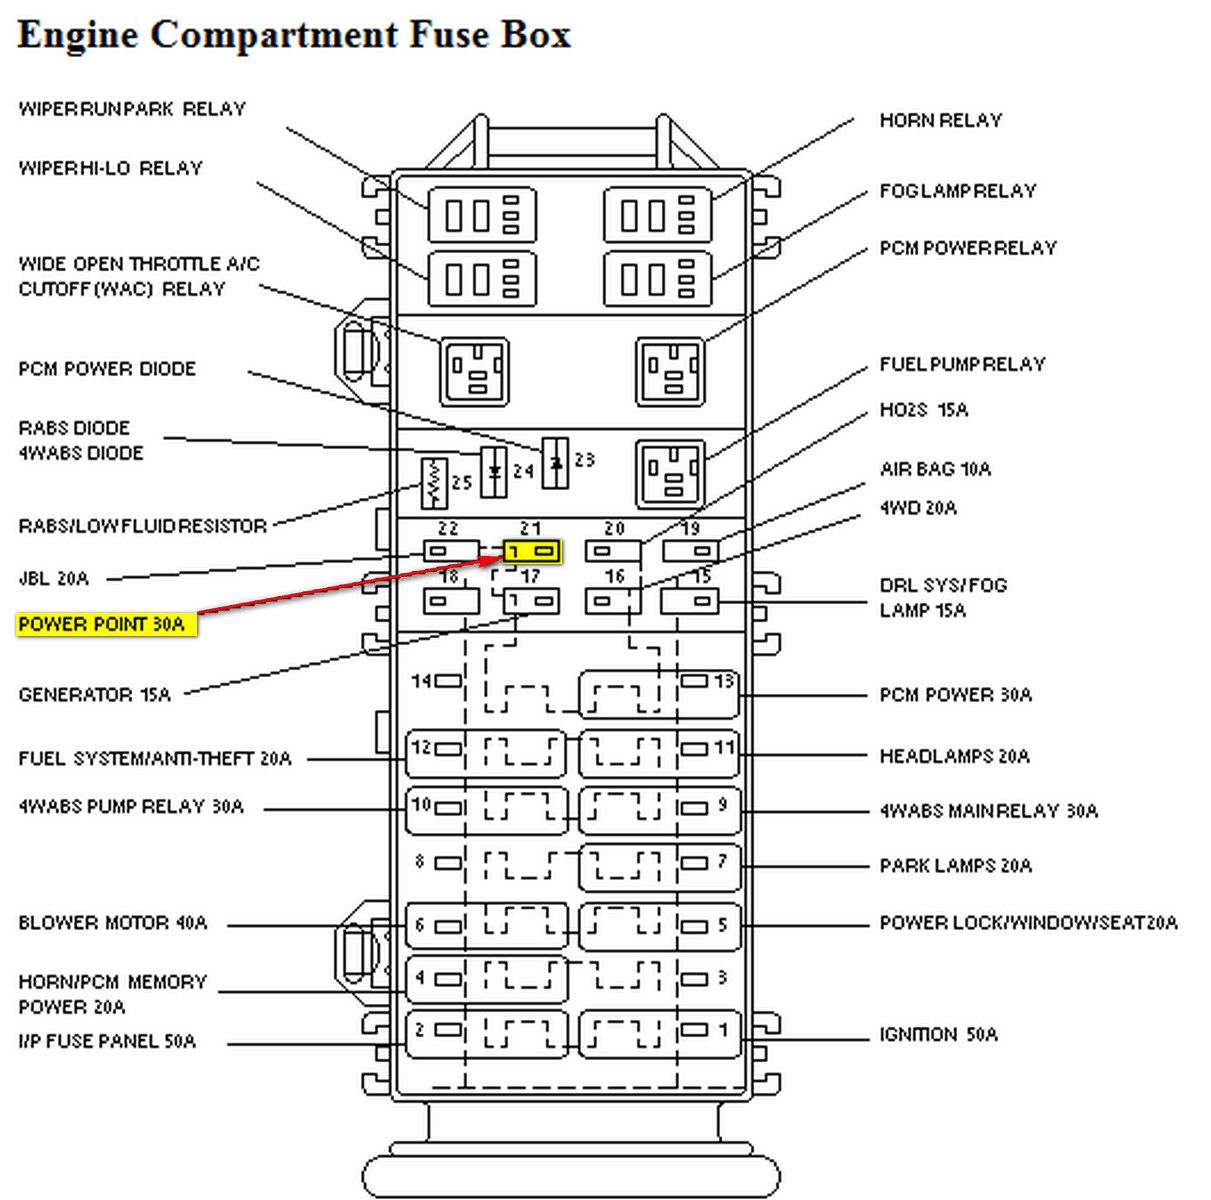 hight resolution of fuse panel diagram wiring diagram schemes boat wiring fuse box diagrams 2011 ranger boat fuse box